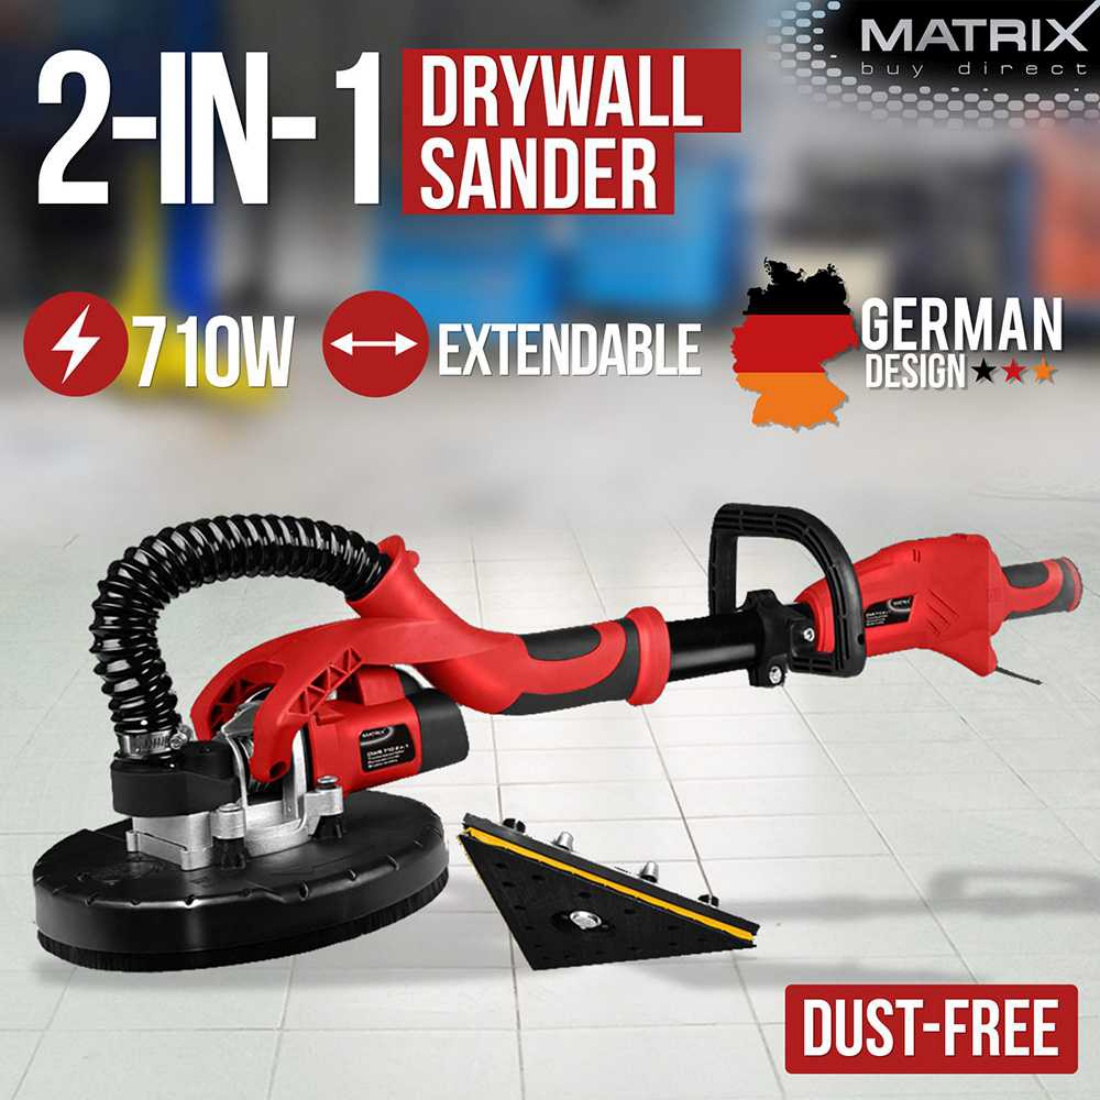 2-in-1 Extendable Dust-Free Drywall Sander Plaster Plasterboard Gyprock Dry Wall